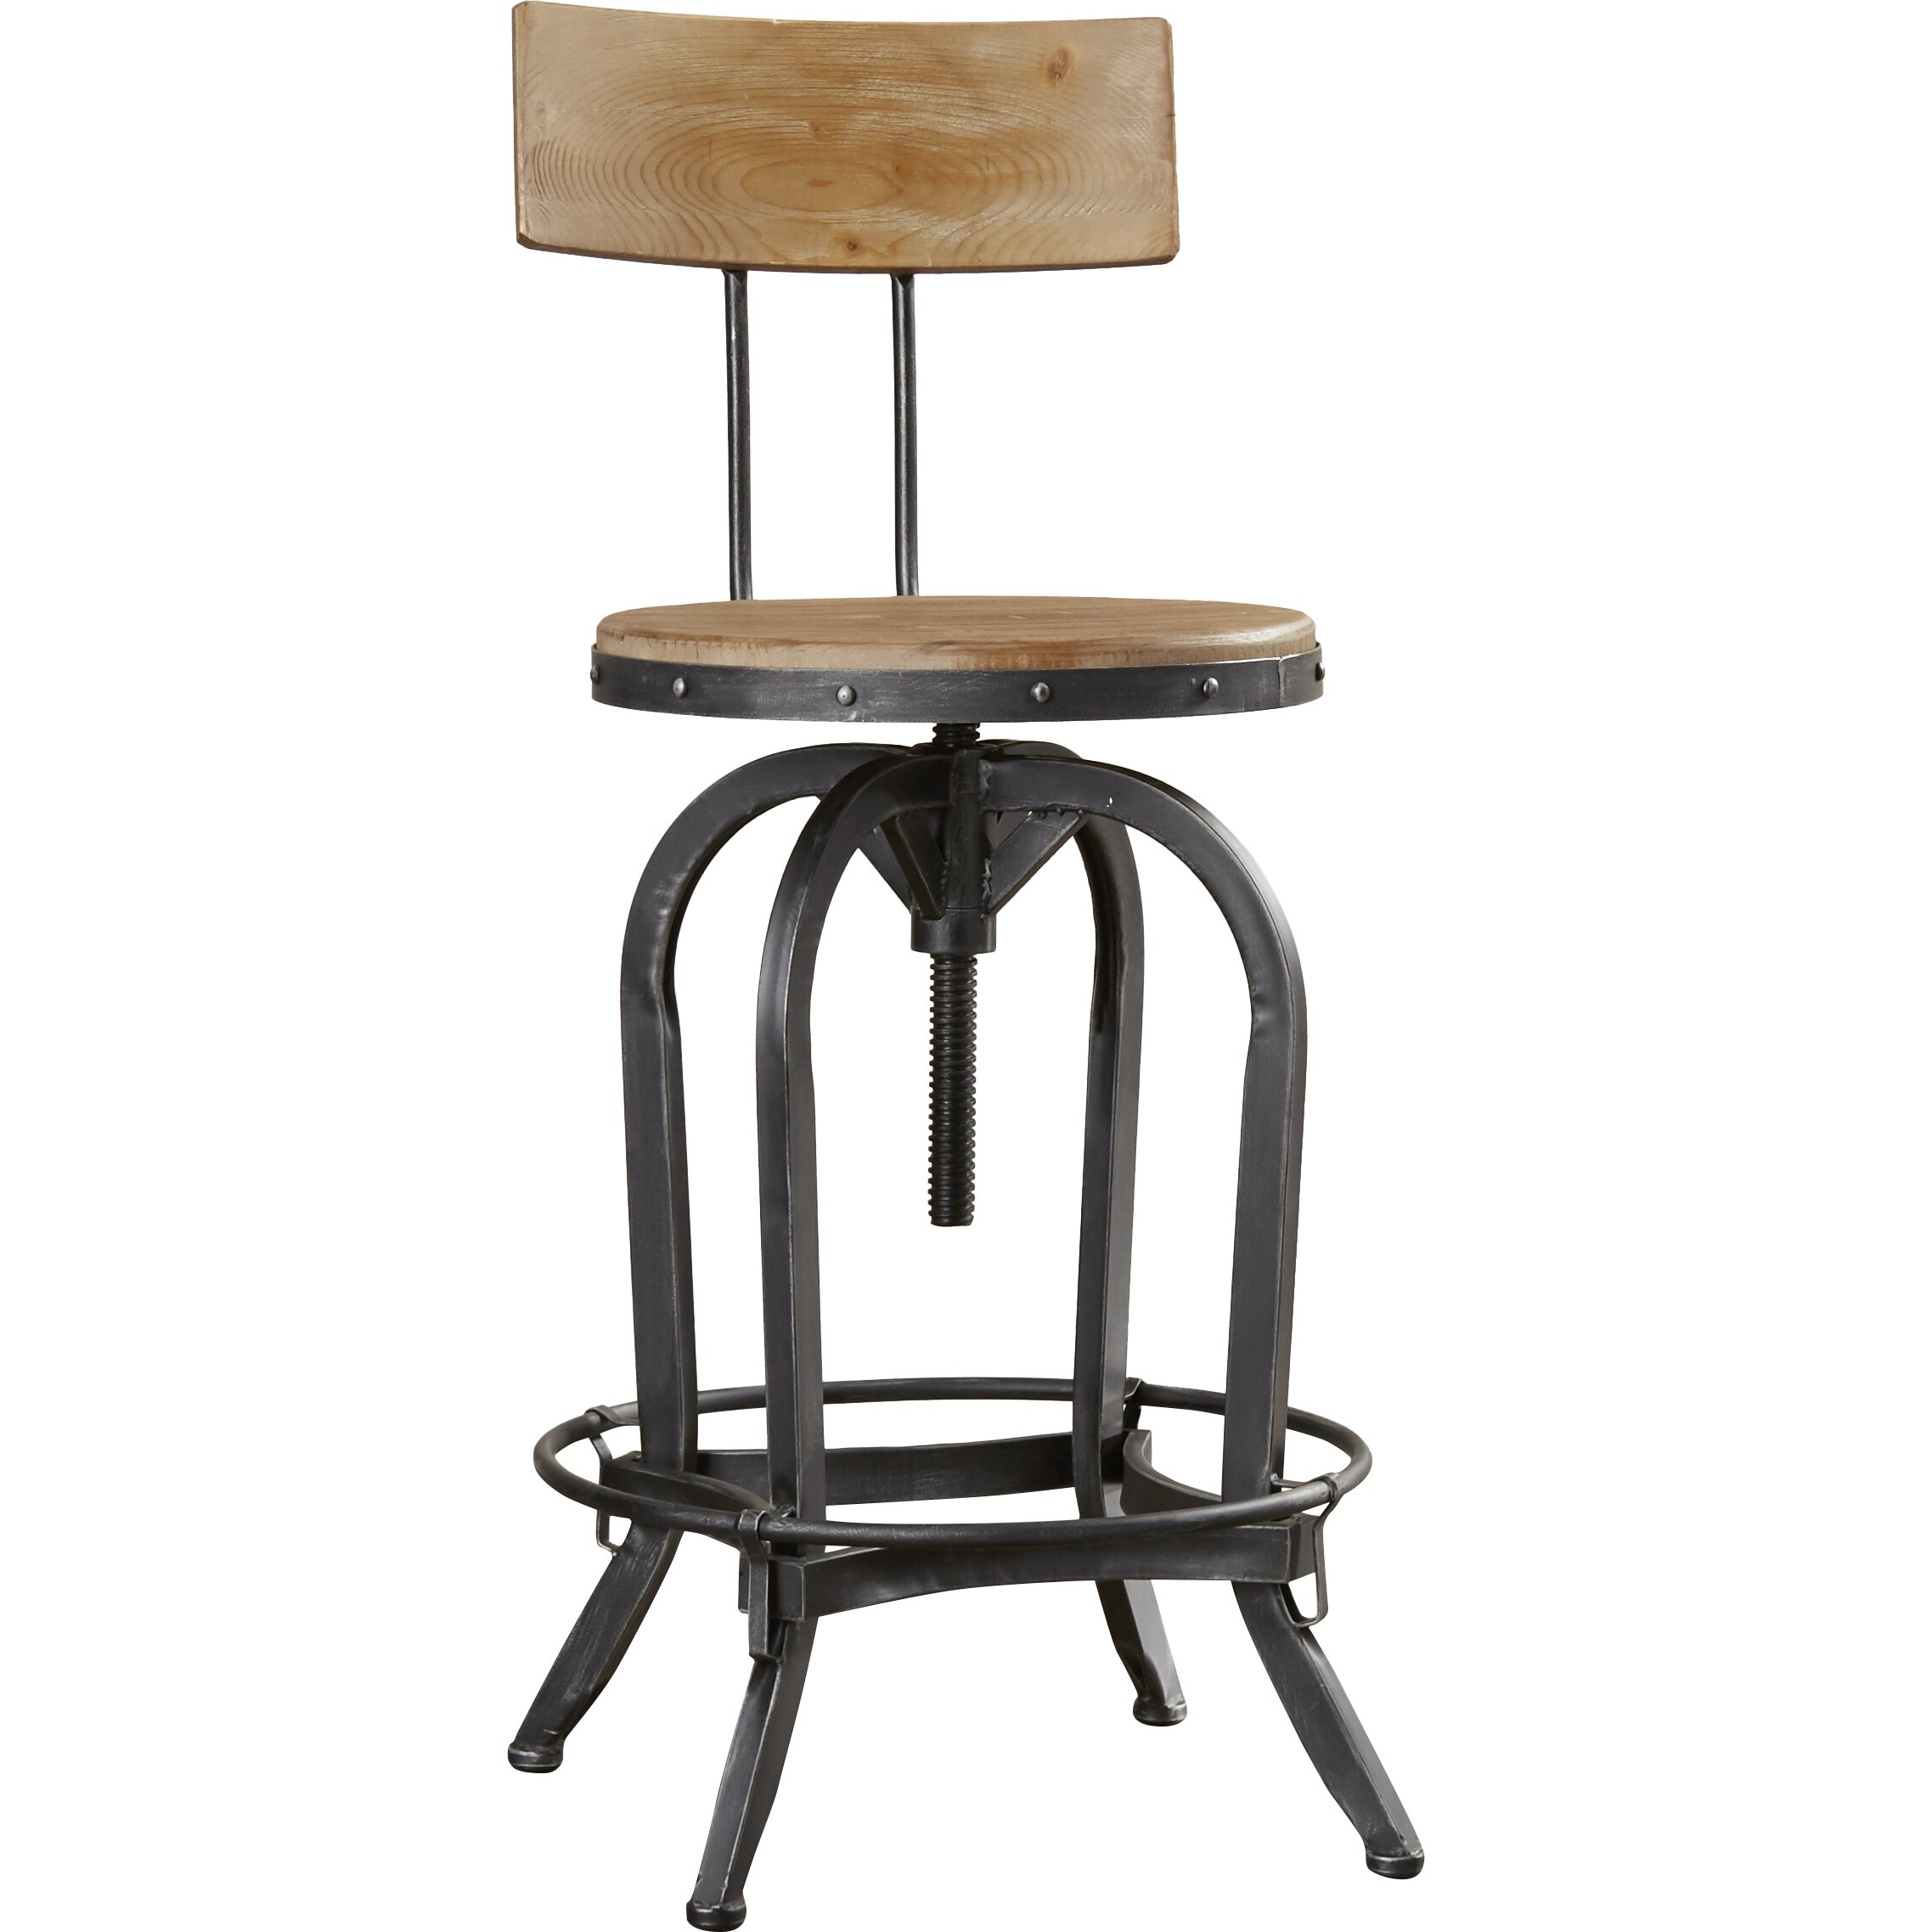 Trent Austin Design Oria Adjustable Height Swivel Bar  : Trent Austin Design Oria Adjustable Height Swivel Bar Stool TADN4183 from www.wayfair.com size 2275 x 2275 jpeg 316kB